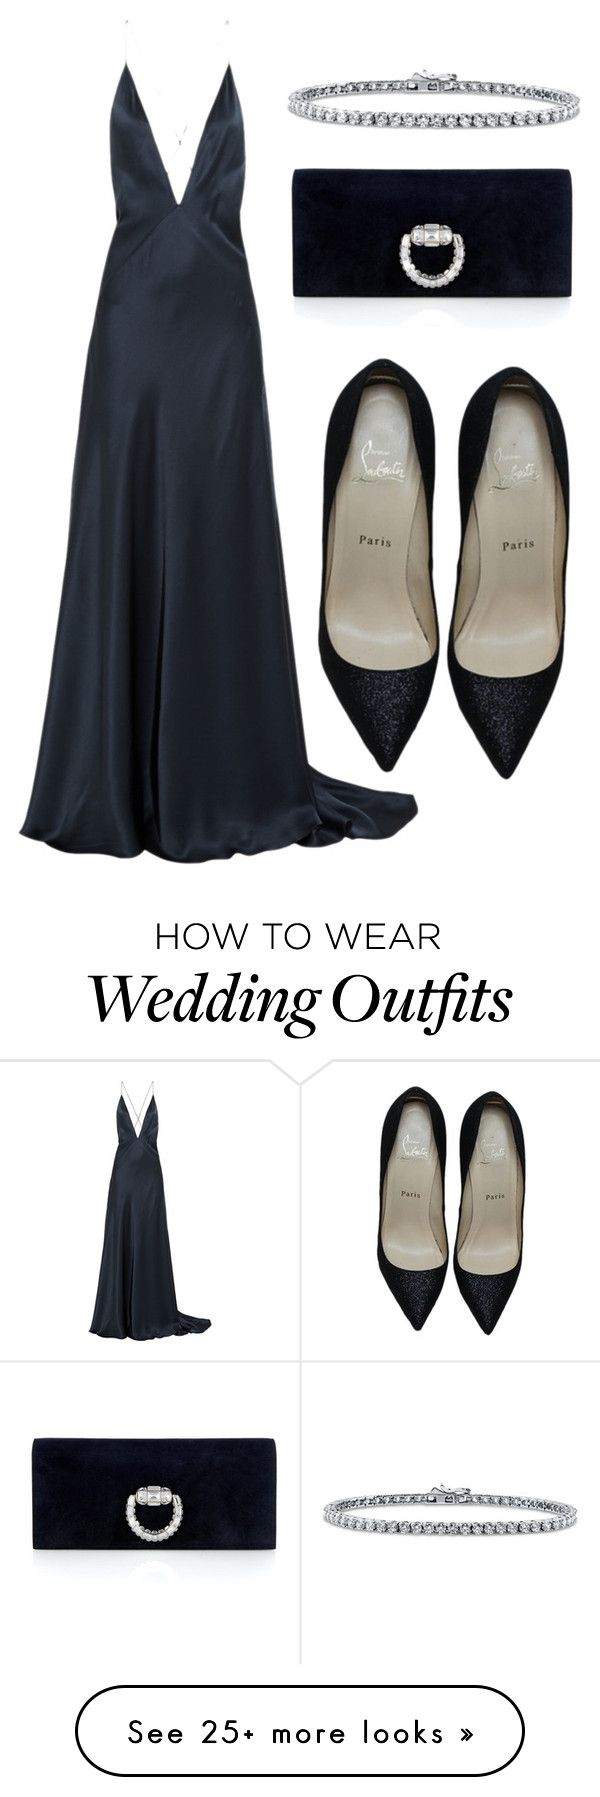 """""""Black tie wedding guest"""" by style-embassy on Polyvore featuring Michael Lo Sordo, Christian Louboutin, Gucci and BERRICLE"""